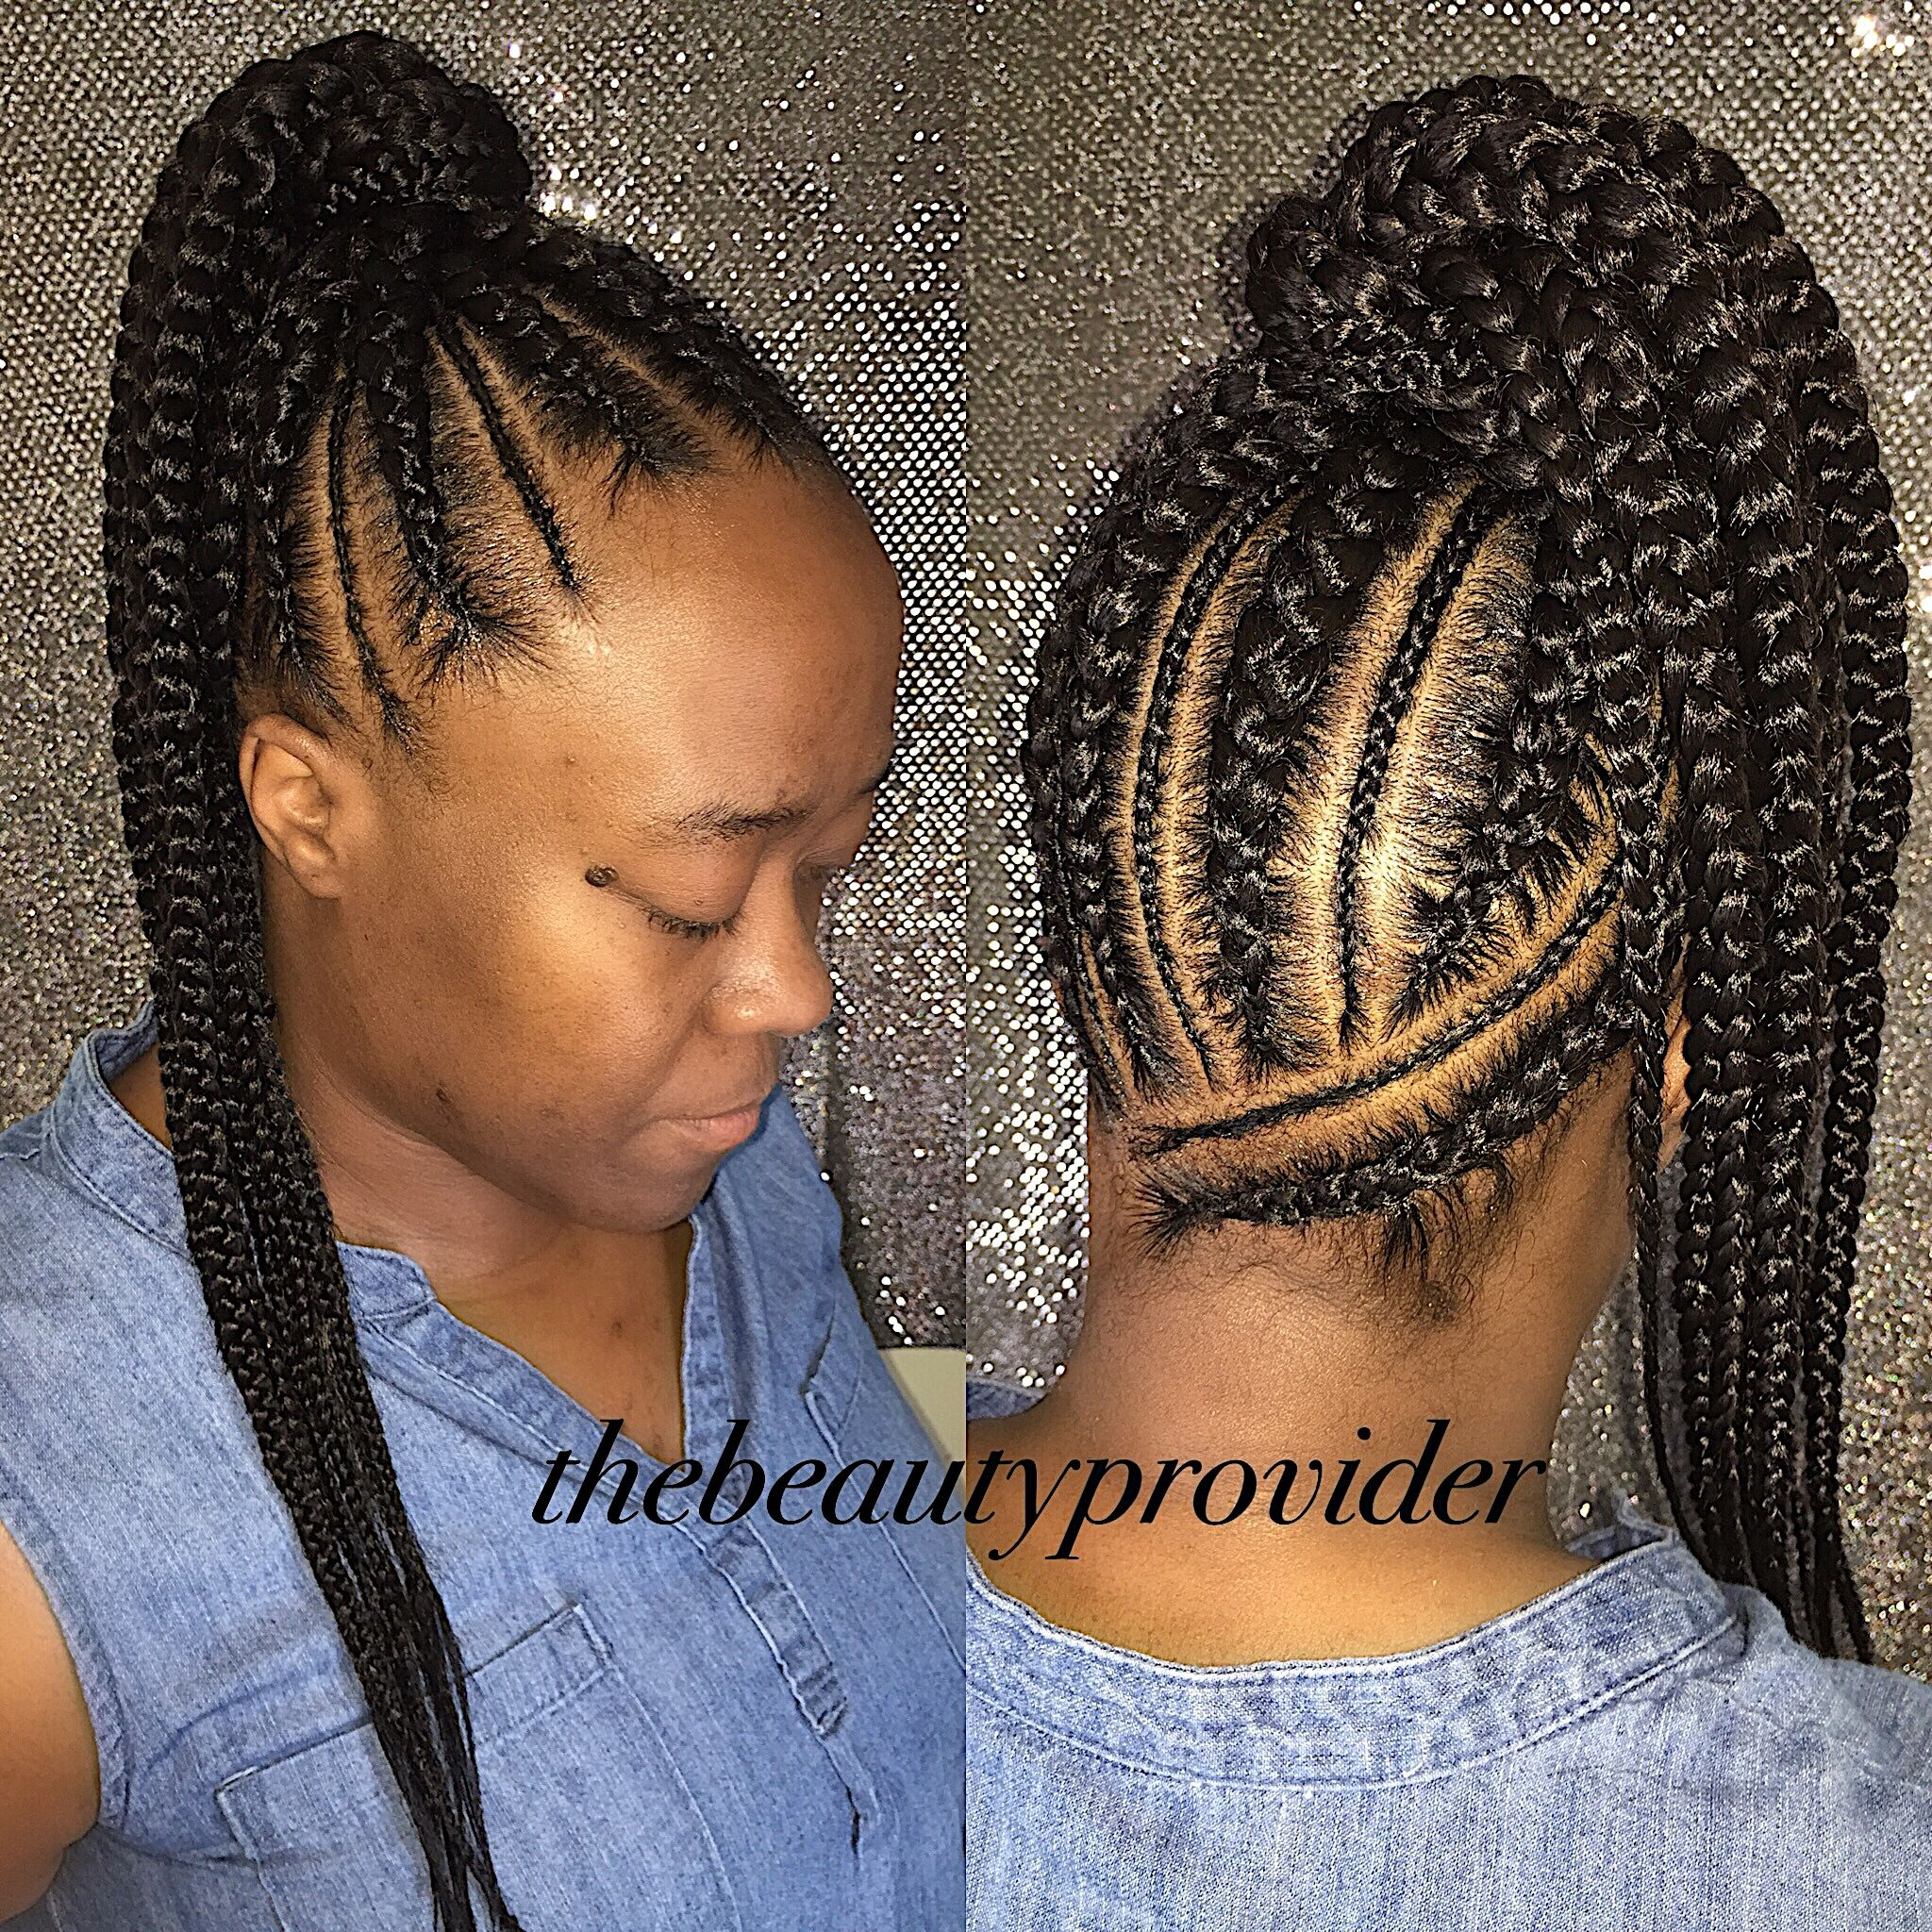 Cool 50 Brilliant Braided Buns For Men Double The Style Mens Braids Hairstyles Long Hair Styles Men Braided Hairstyles